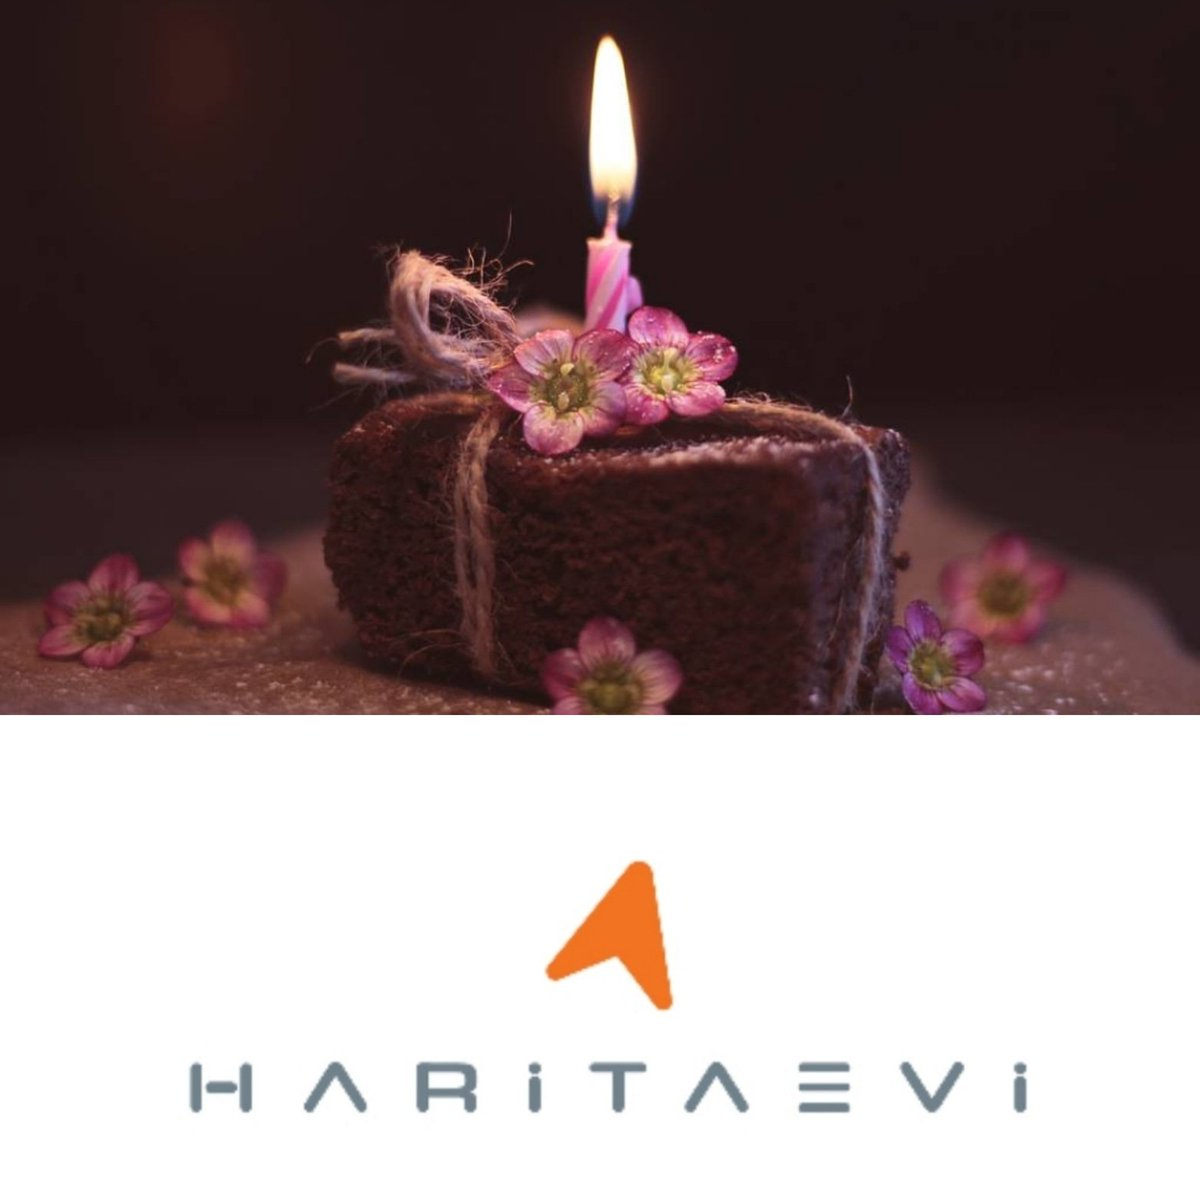 RT @haritaevi: Bugün, şirketimizin kuruluşunun 13.yıldönümü. Gururluyuz ve mutluyuz.🤩🎉 . Today is the 13th anniversary of our company's establishment. We're happy and proud.🤩🎉 #aviation #sky #avgeek  #event #aircraft #pilot #airplane #plane #fly #tra…